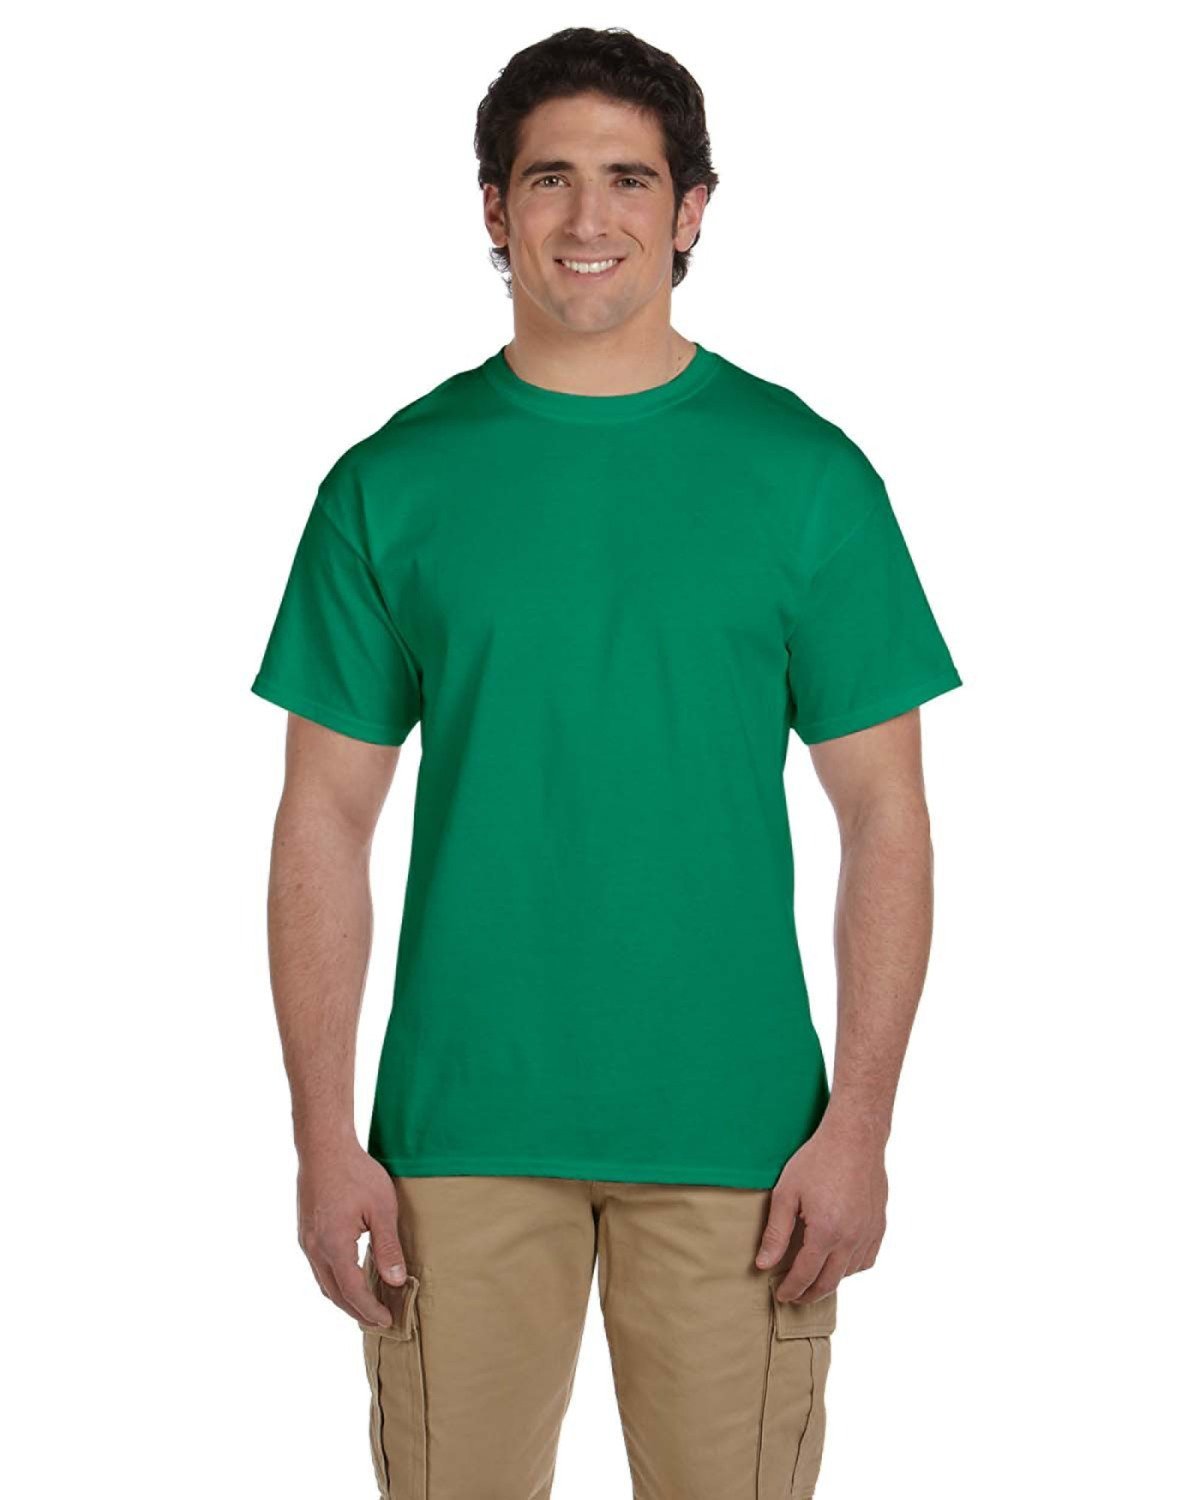 Fruit of the Loom Adult HD Cotton™ T-Shirt RETRO HTH GREEN